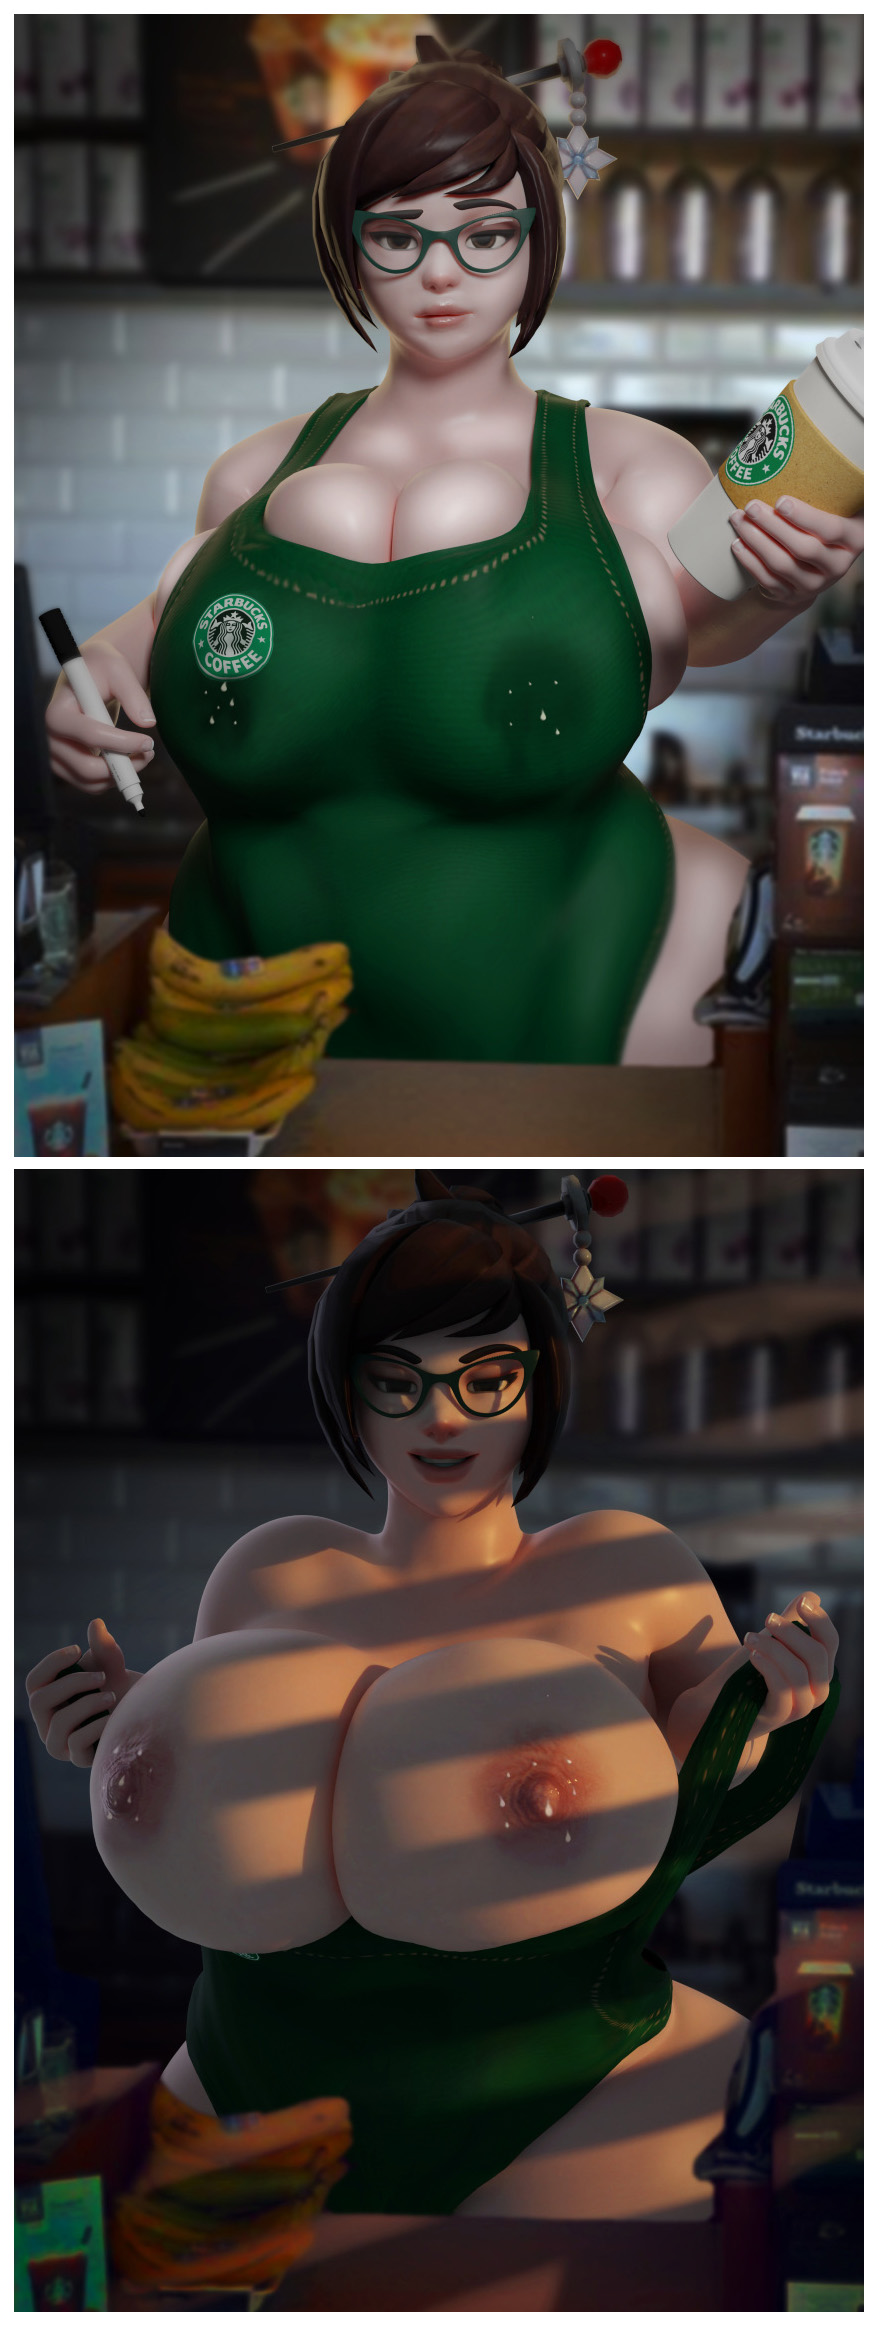 mei-sex-art-–-large-breasts,-ls,-chubby,-iced-latte-with-breast-milk,-areolae